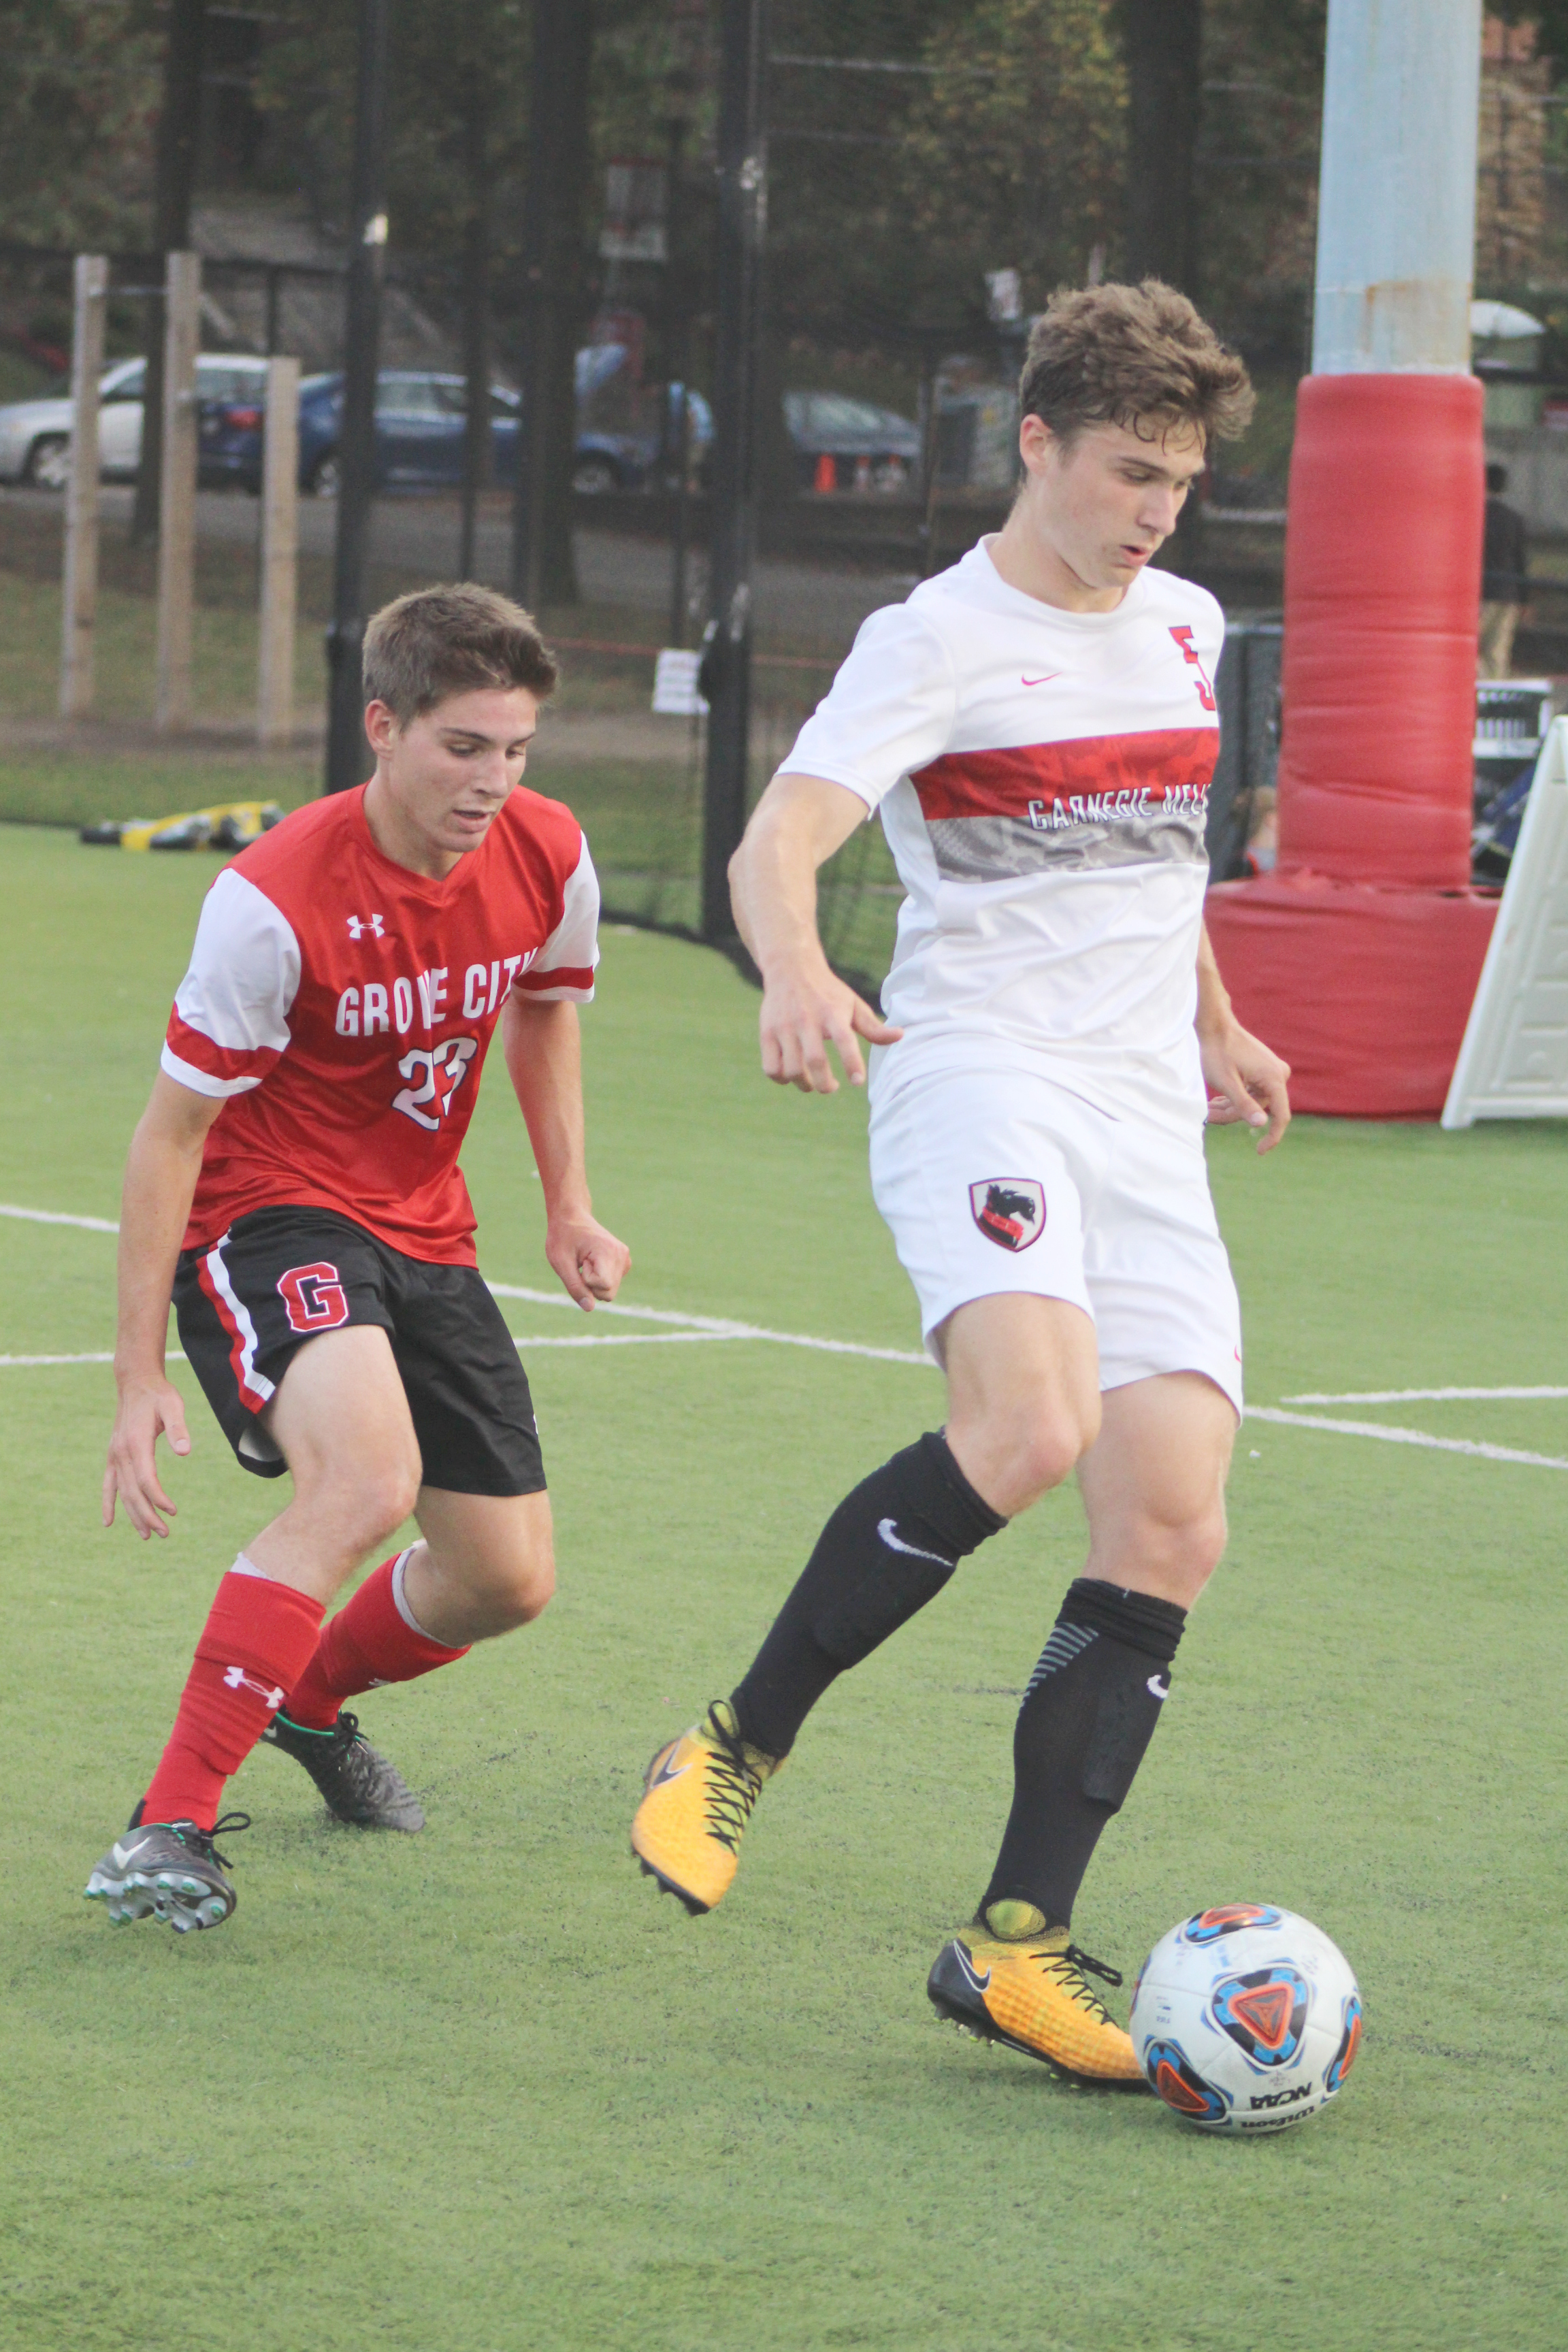 Sophomore midfielder Jack Painter passes through a Grove City player. (credit: Jeanette De La Torre- Duran/ Junior Photographer)